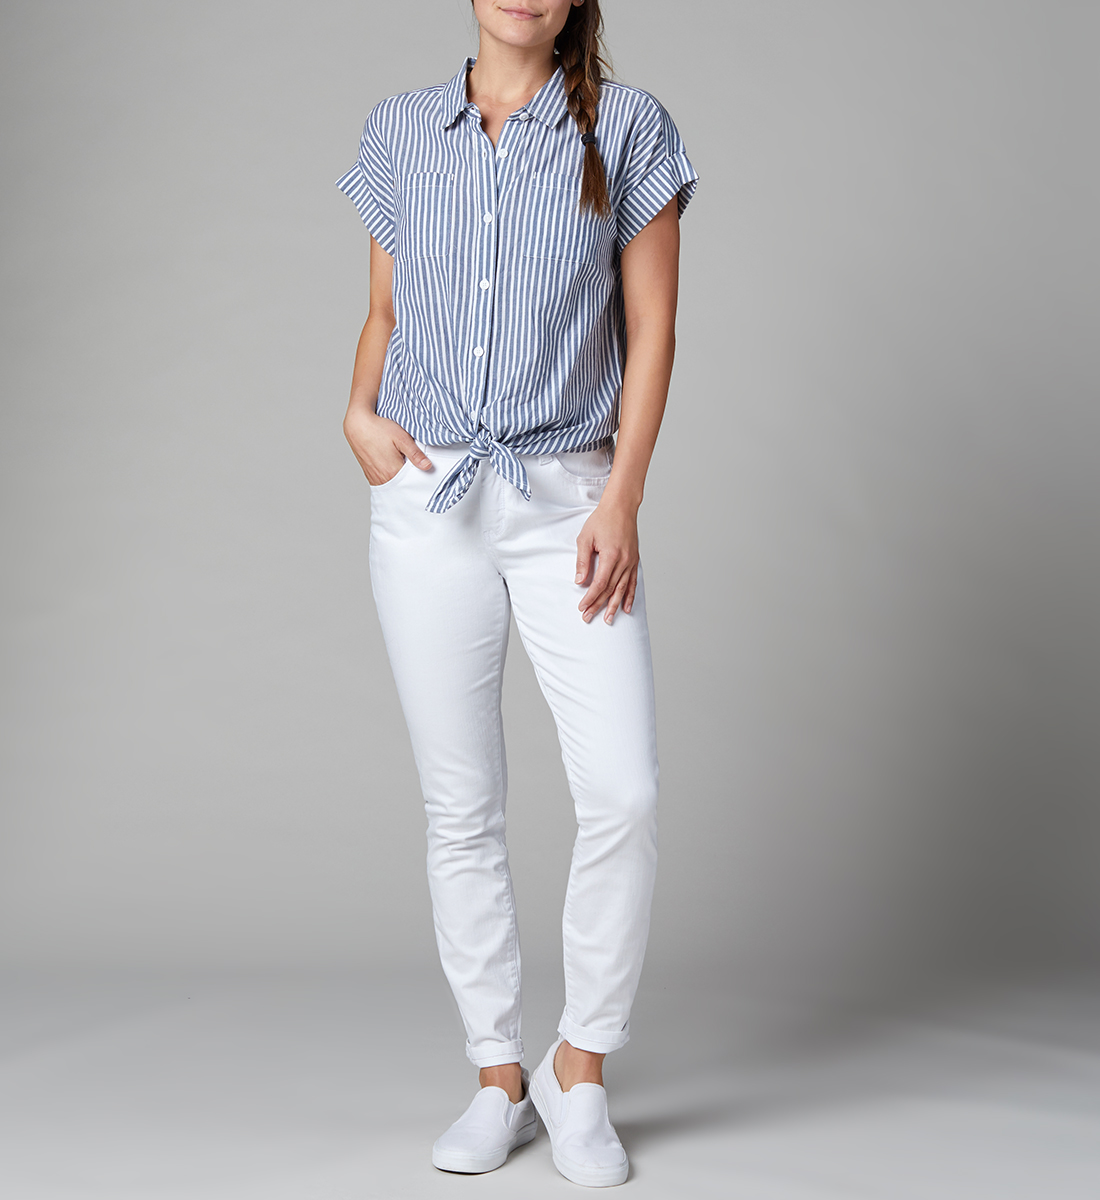 Sally Button-Down Tie-Front Shirt Petite, , hi-res